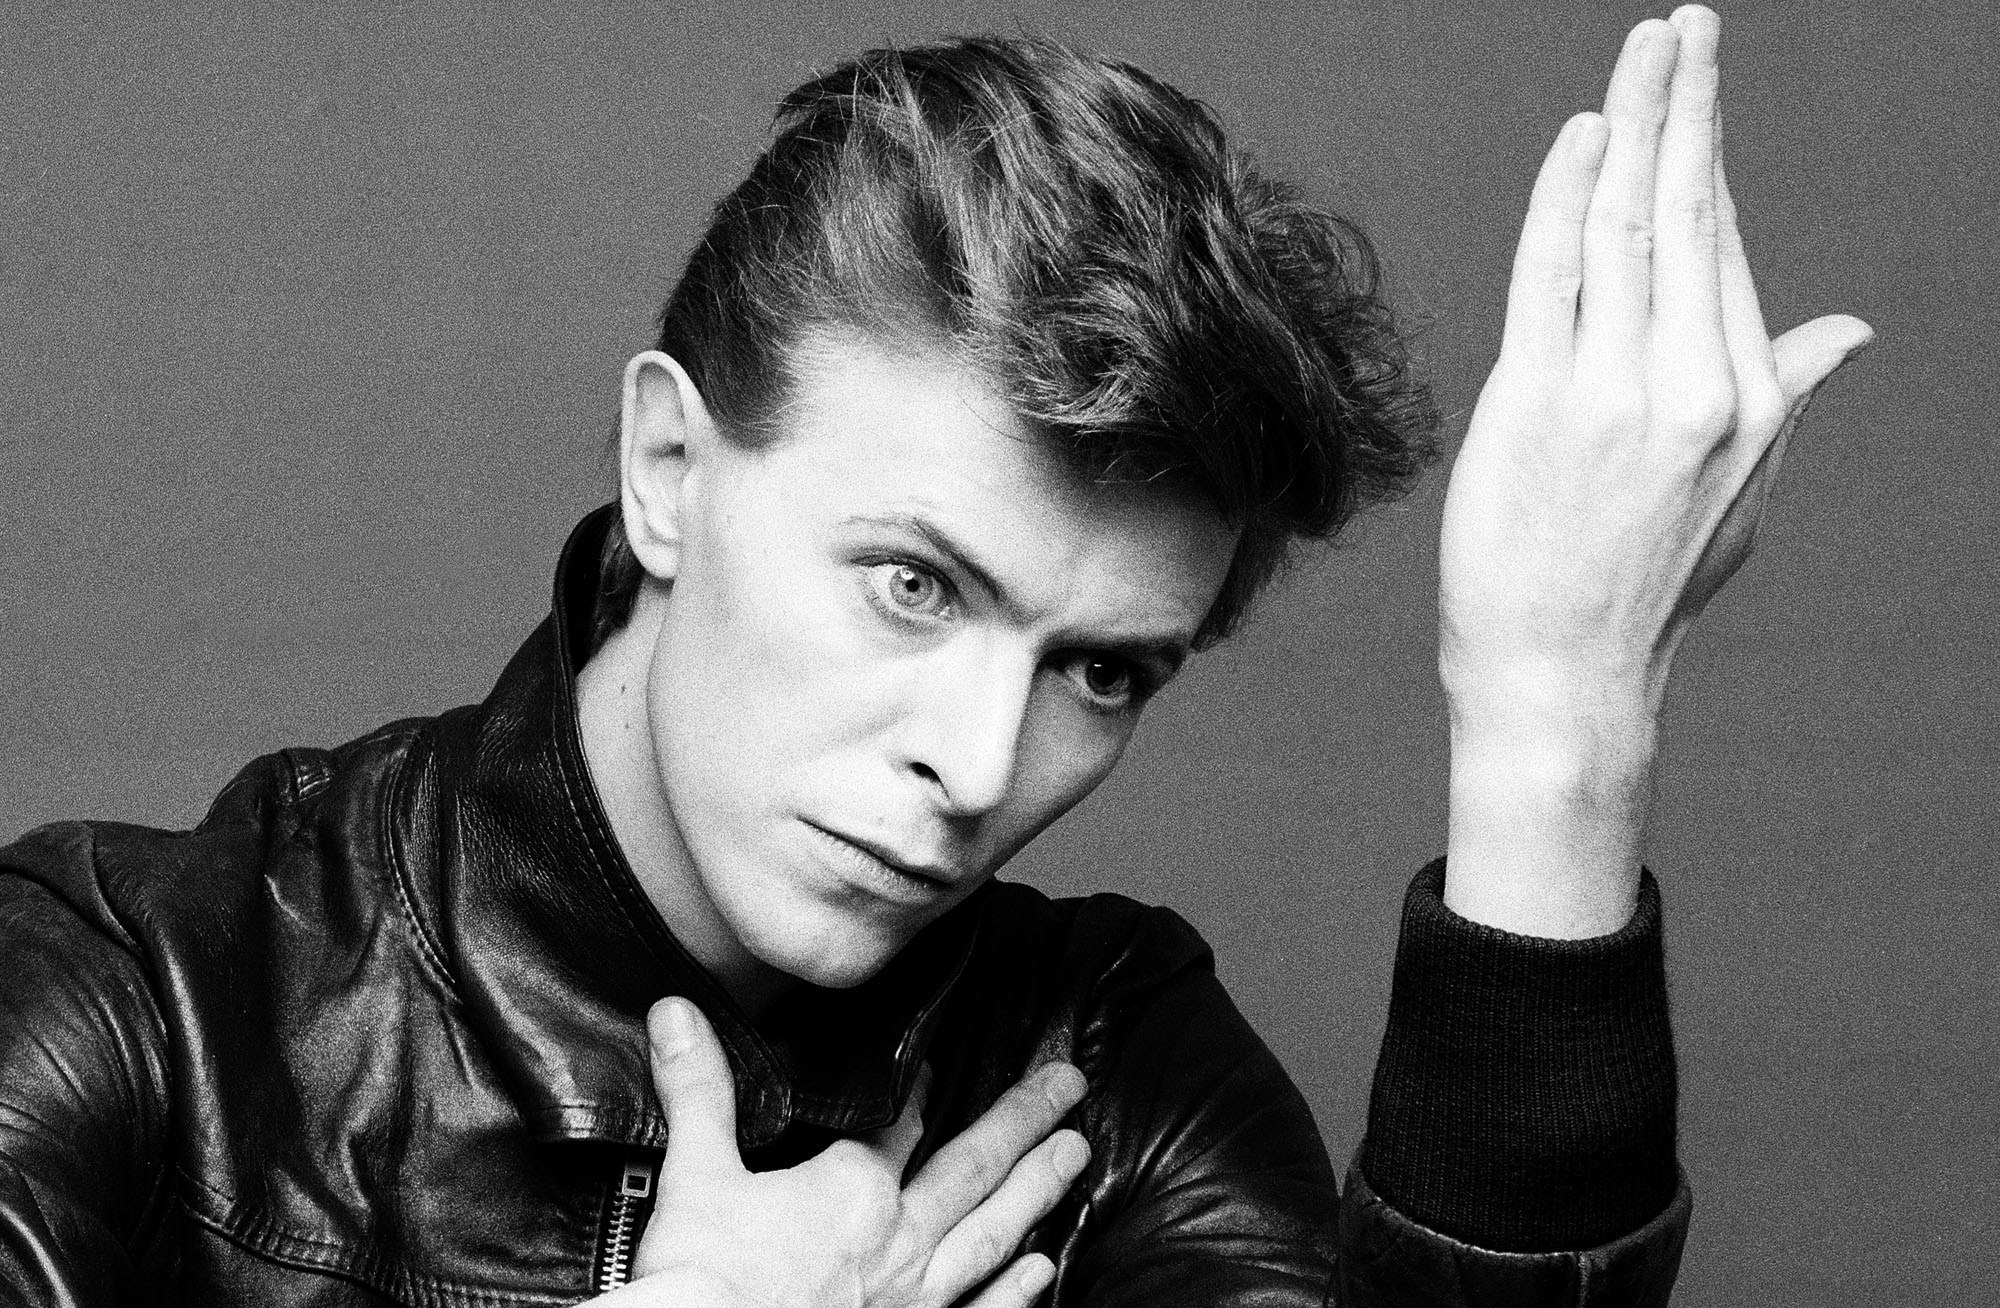 david bowie wallpapers, cool david bowie backgrounds | 35 superb